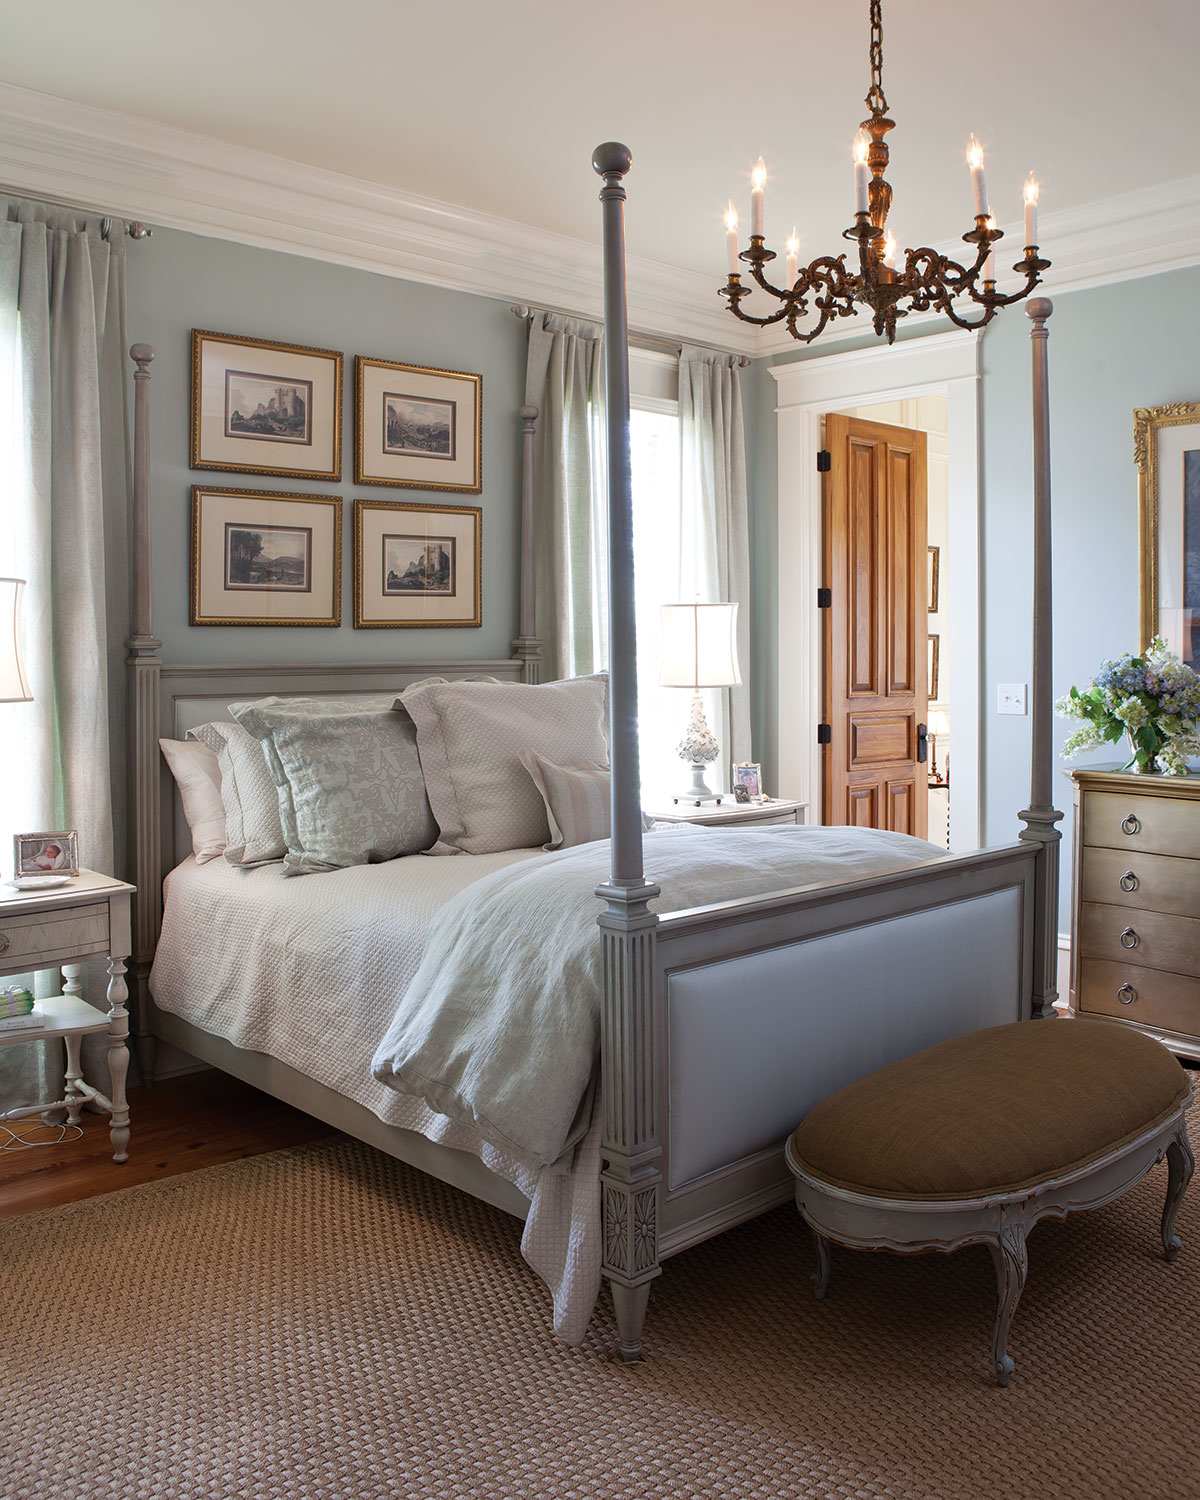 Bedroom Decorating Ideas: 10 Dreamy Southern Bedrooms